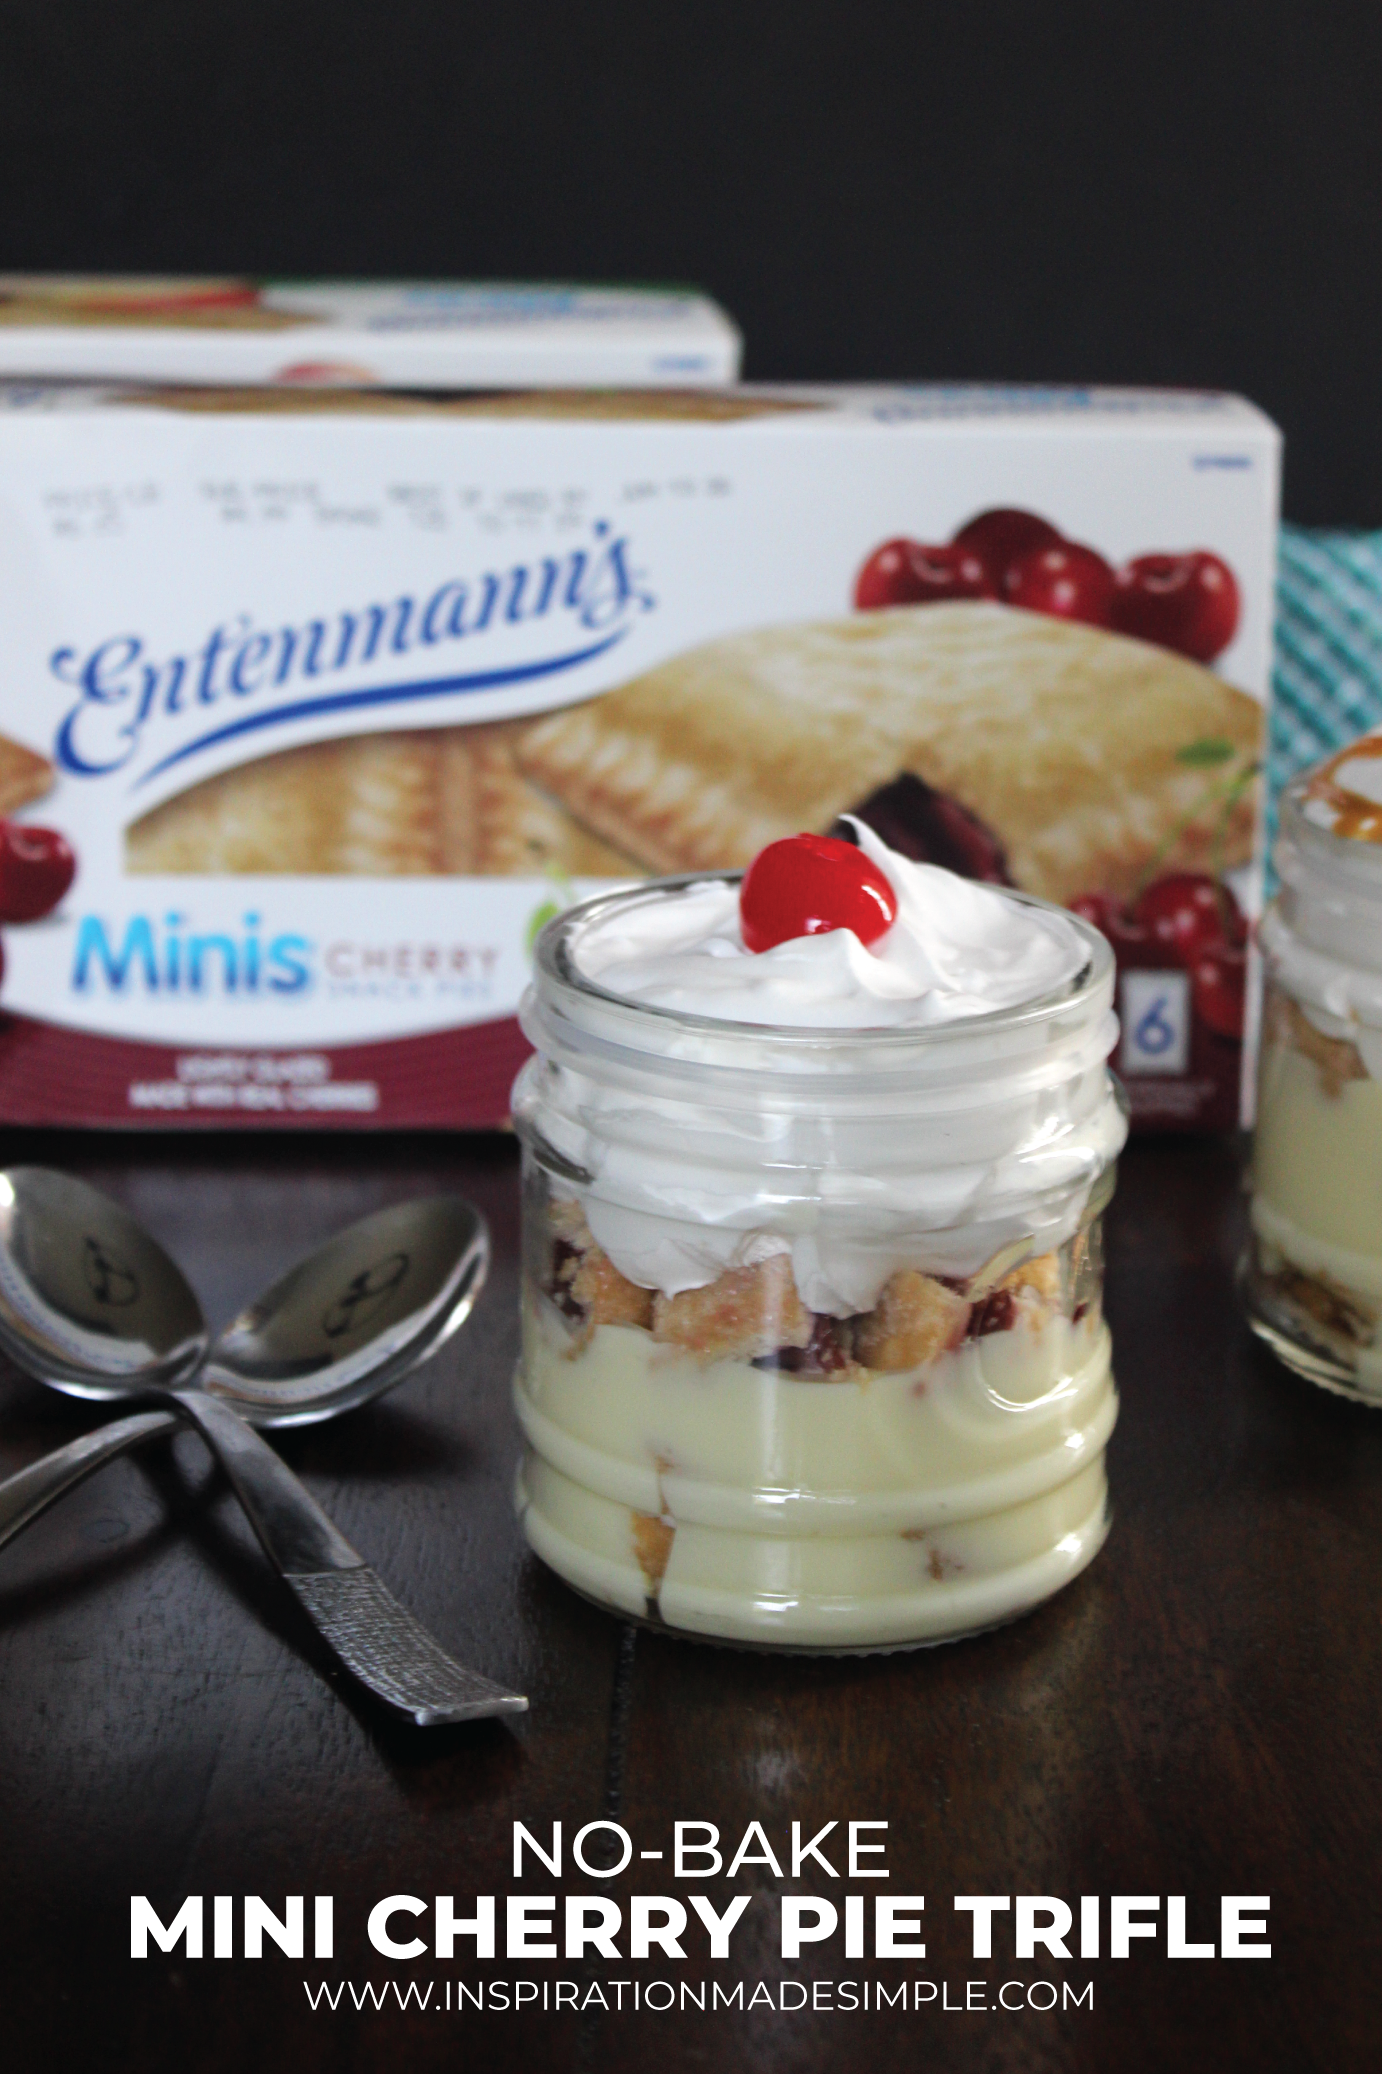 No-Bake Mini Cherry Pie Trifle with Entenmann's® Minis Cherry Snack Pies